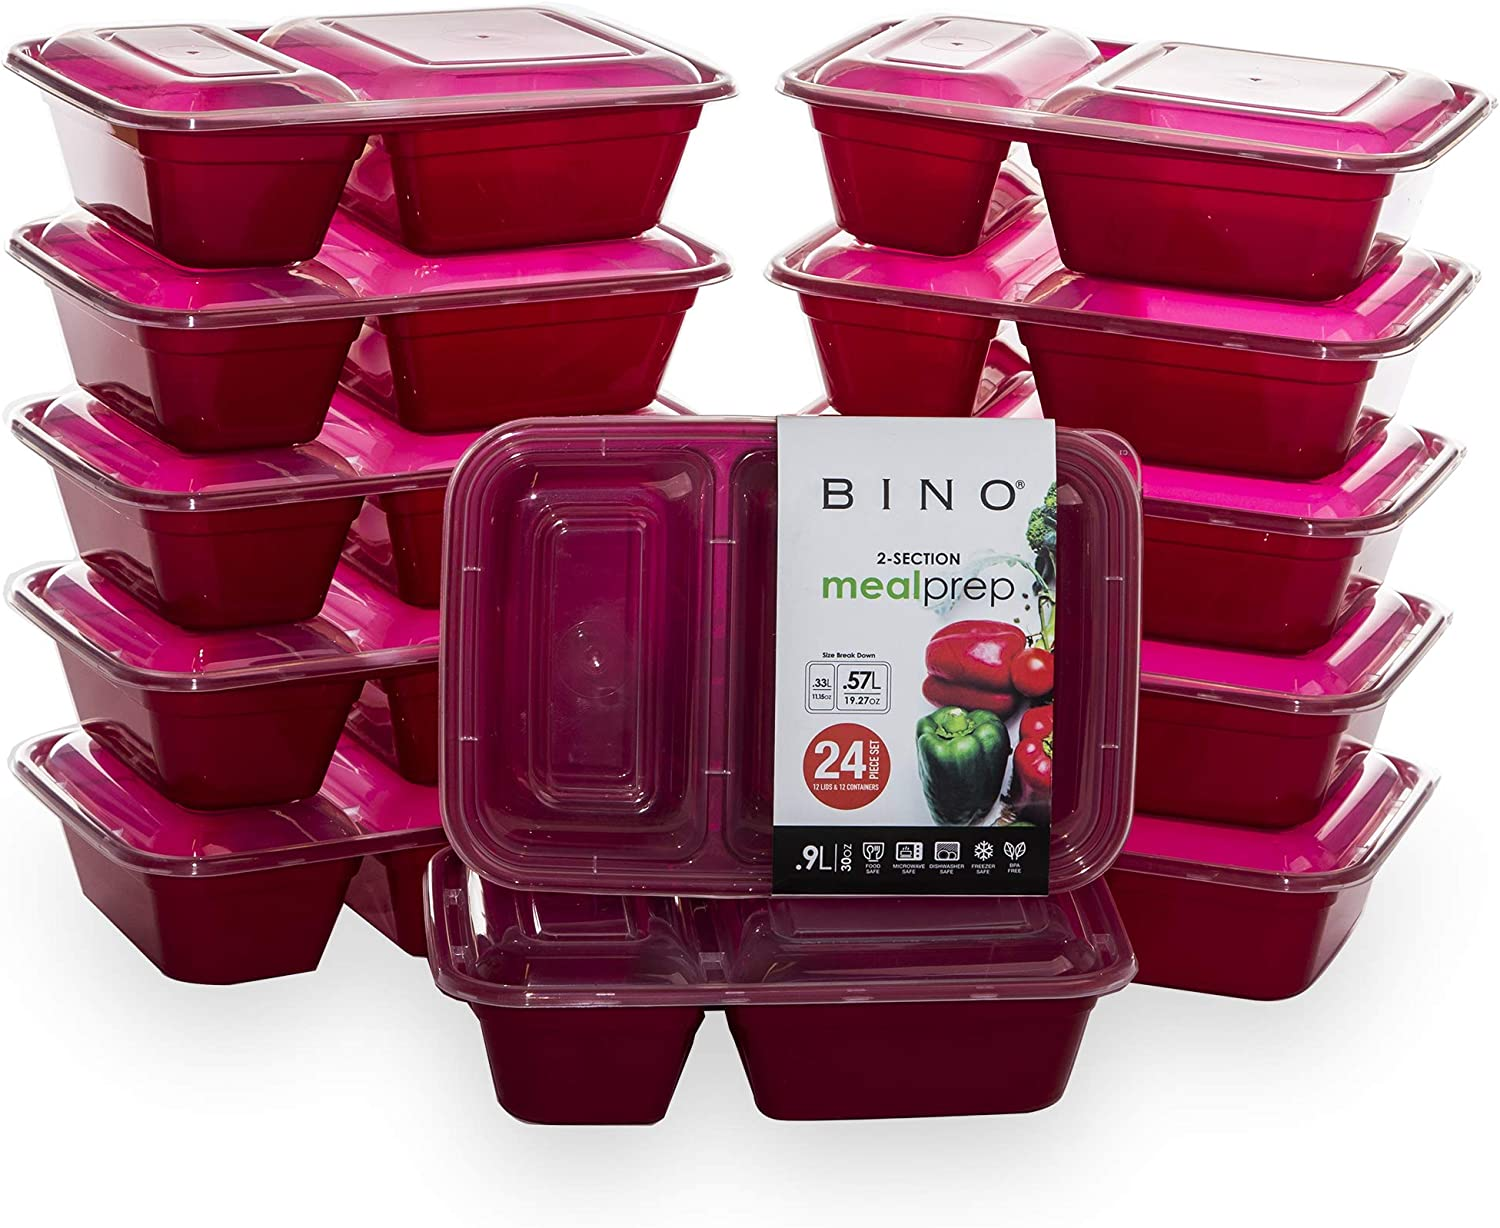 BINO Meal Prep Containers with Lids - 2 Compartment /30 oz [12-Pack], Red - Bento Box Lunch Containers for Adults Food Containers Meal Prep Food Prep Containers Set